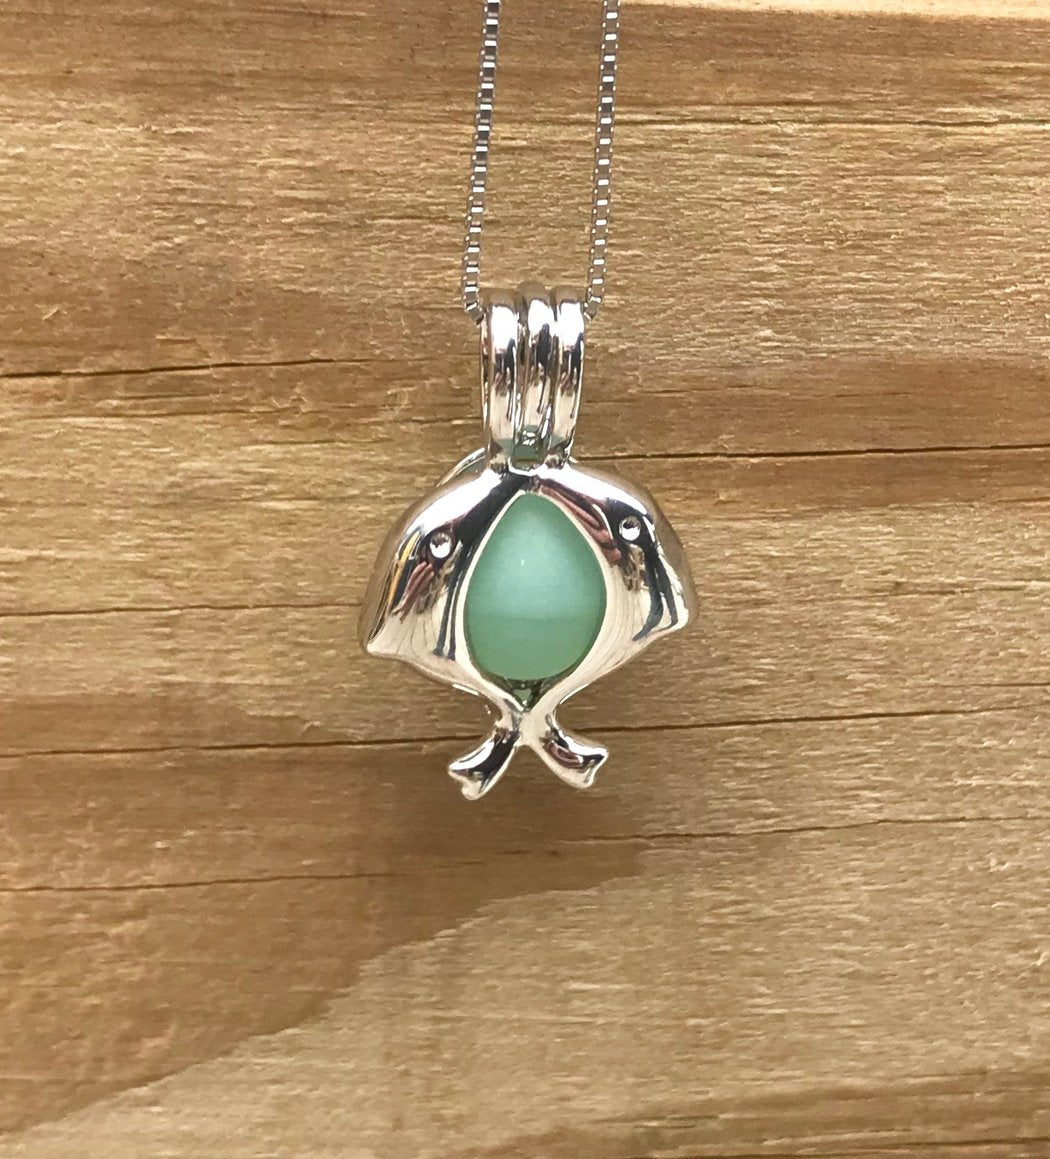 Jumping Dolphins Locket Necklace with Single Piece Sea Glass in Sterling Silver by Wave of Life